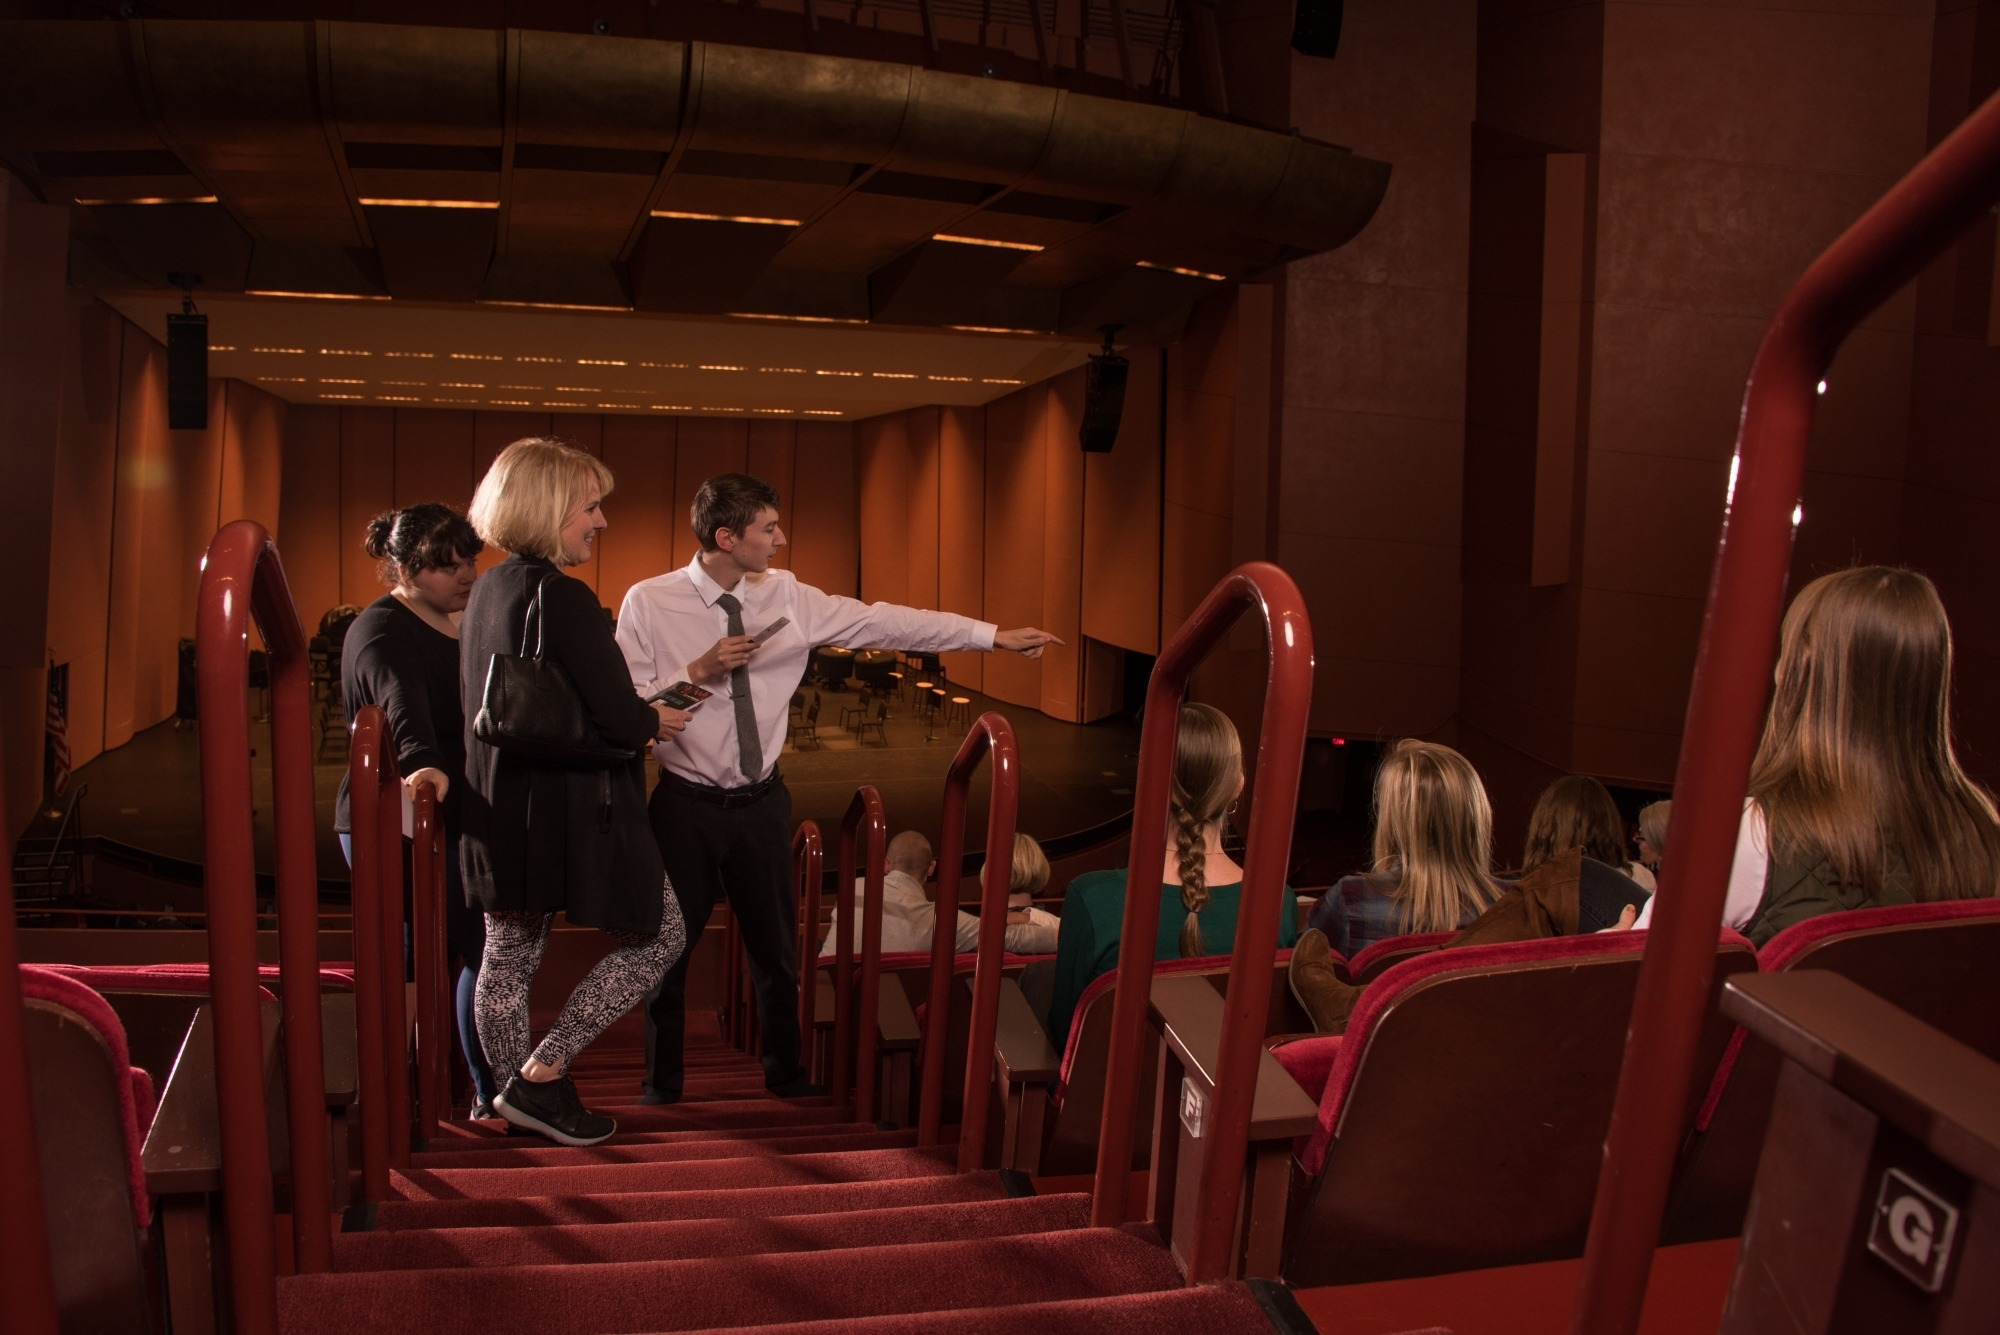 Image of an usher in a white shirt and black tie pointing guests toward their seats at the Lied Center